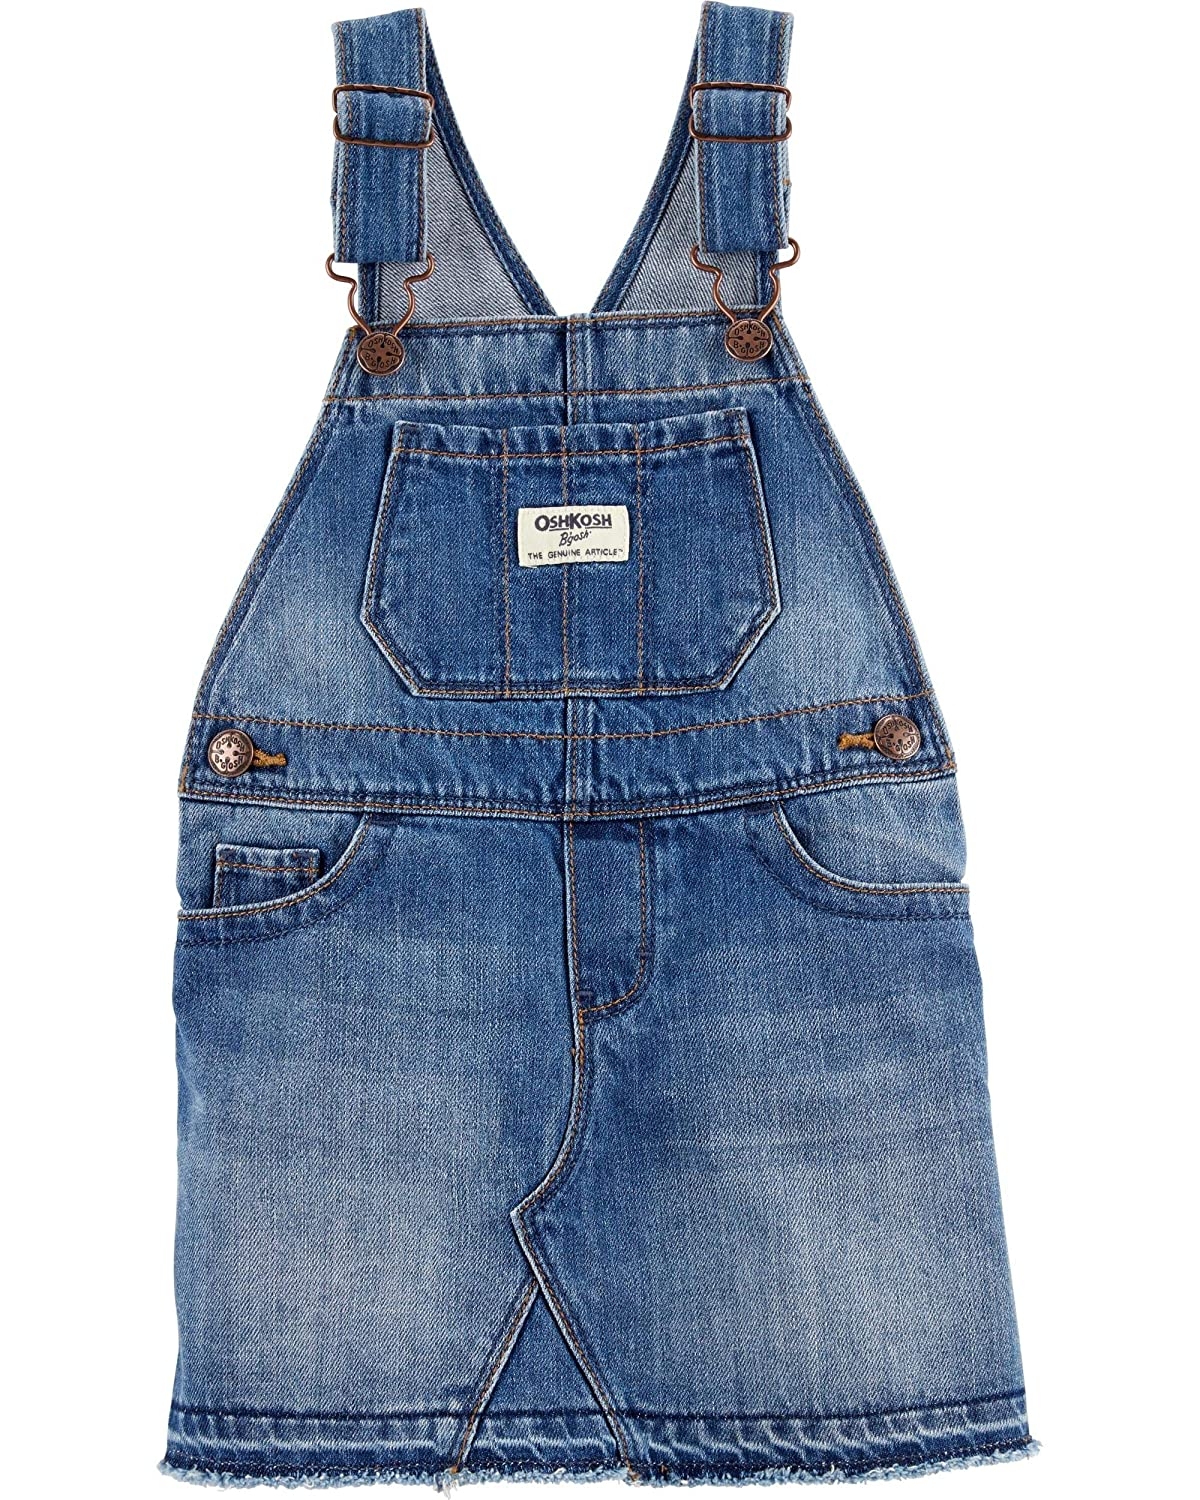 大人気定番商品 OshKosh B'Gosh PANTS ガールズ B07KRYQ5L1 Denim Jumper|2T Jumper 幼児 PANTS 幼児|Denim 幼児|Denim Jumper|2T, 美野里町:dad26f29 --- vanhavertotgracht.nl